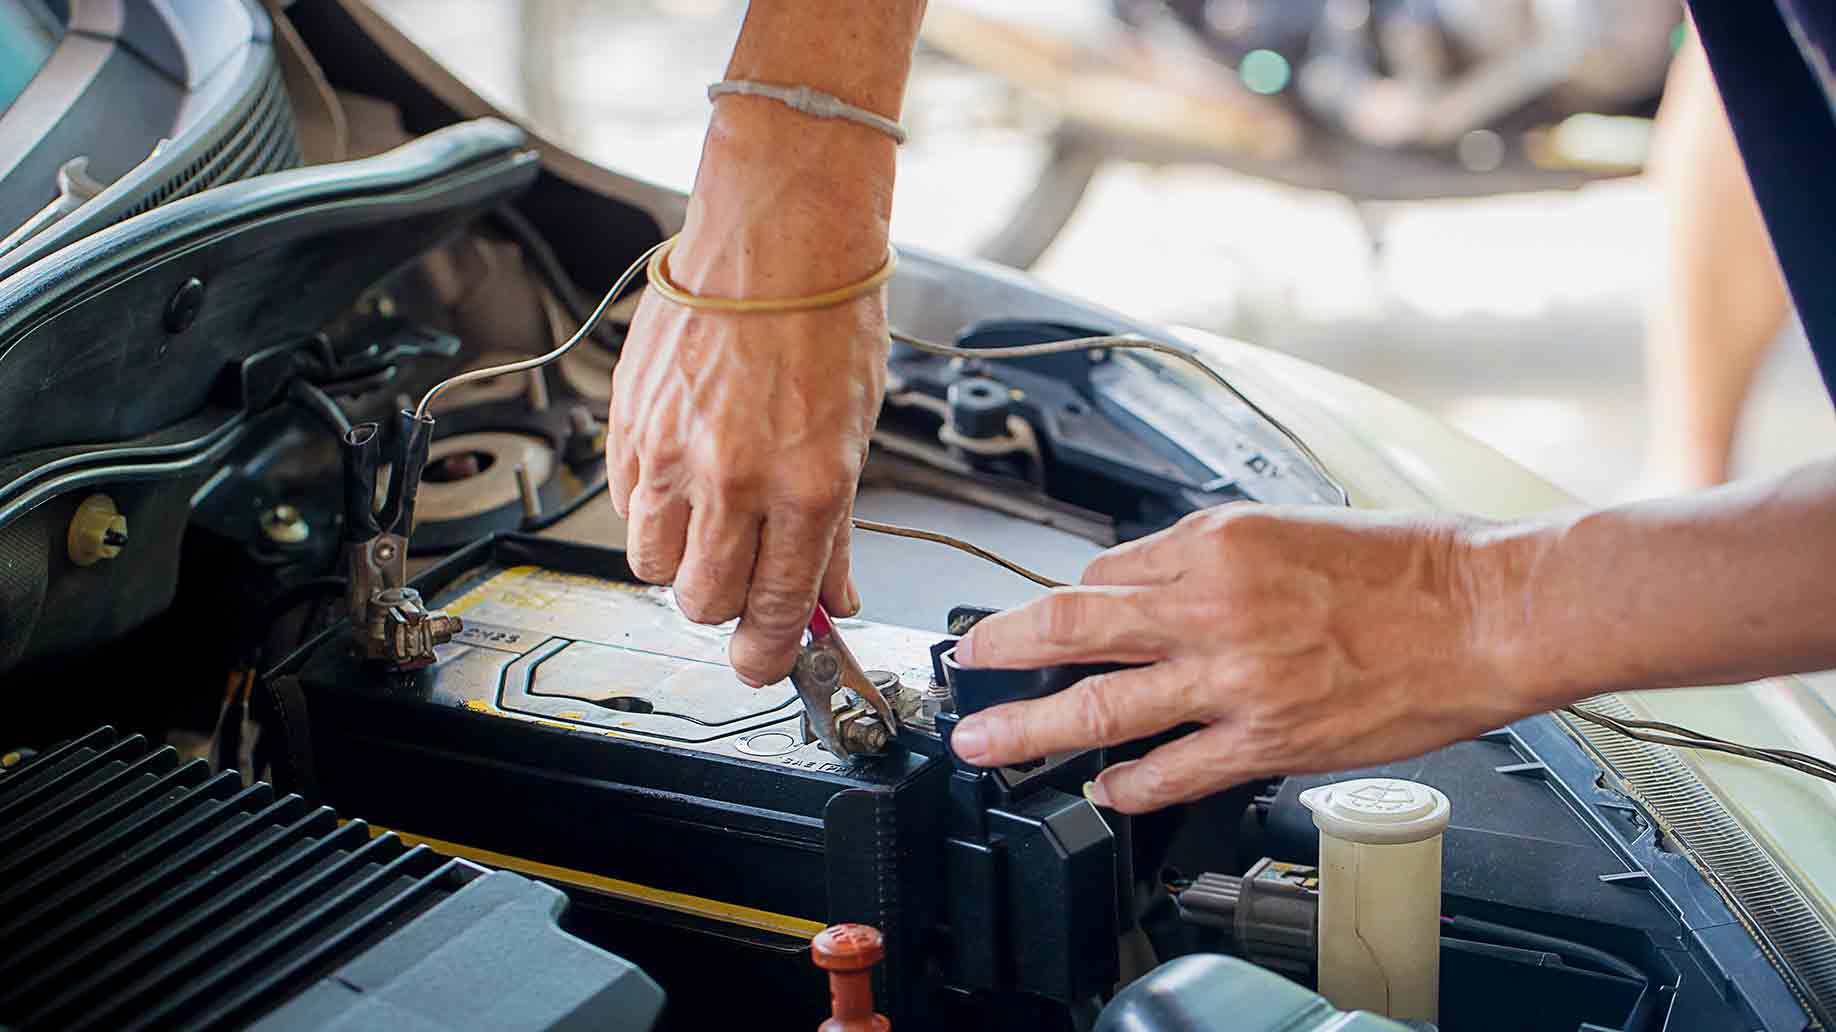 Depleted Battery Changed By Mechanic For Car Maintenance